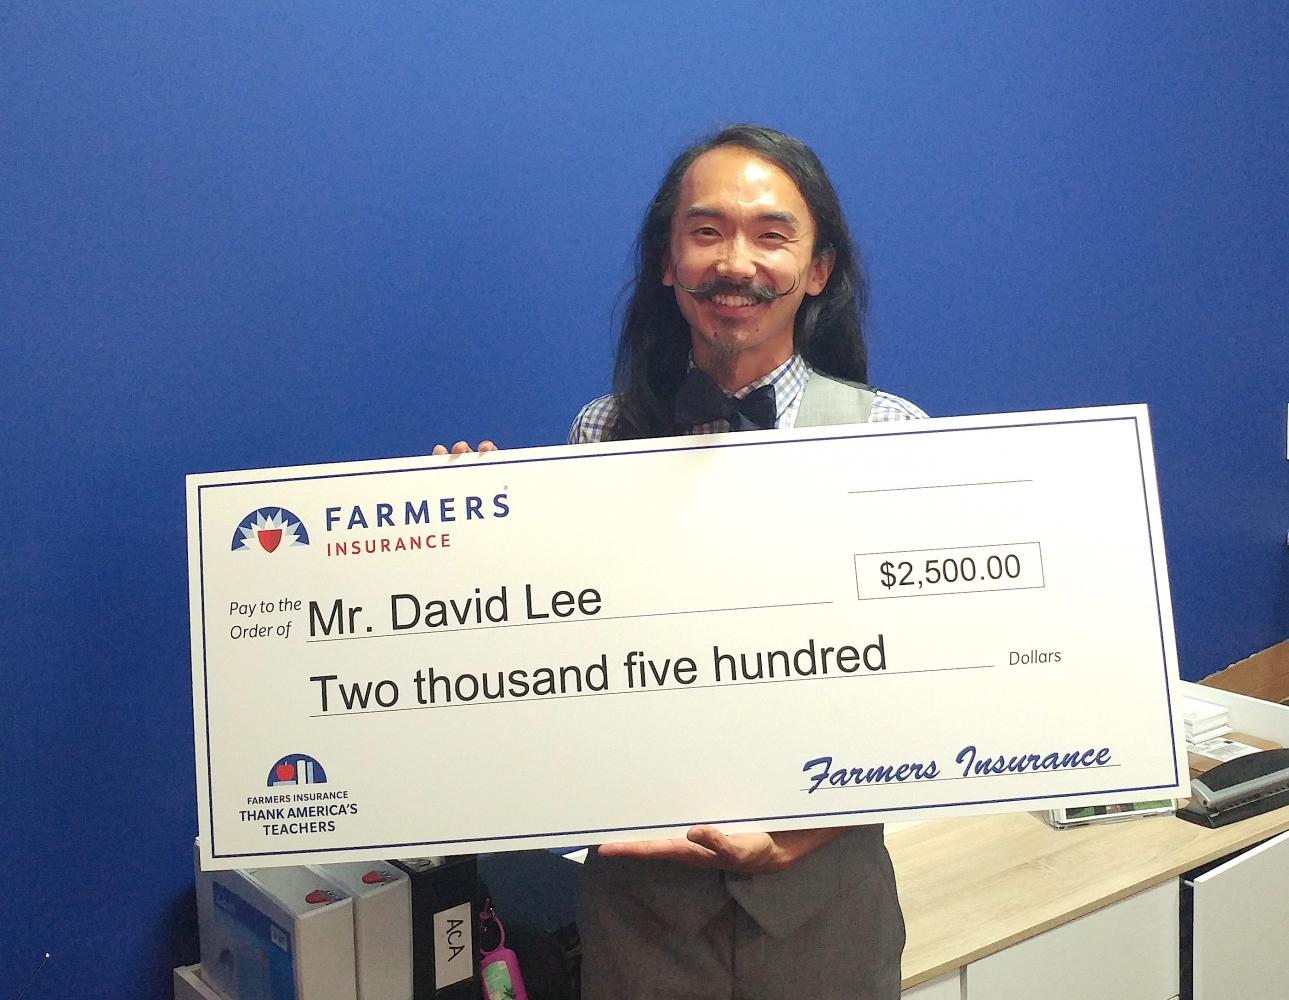 Thank America's Teachers Grant, won by Mr David Lee, the Mariachi Band Director